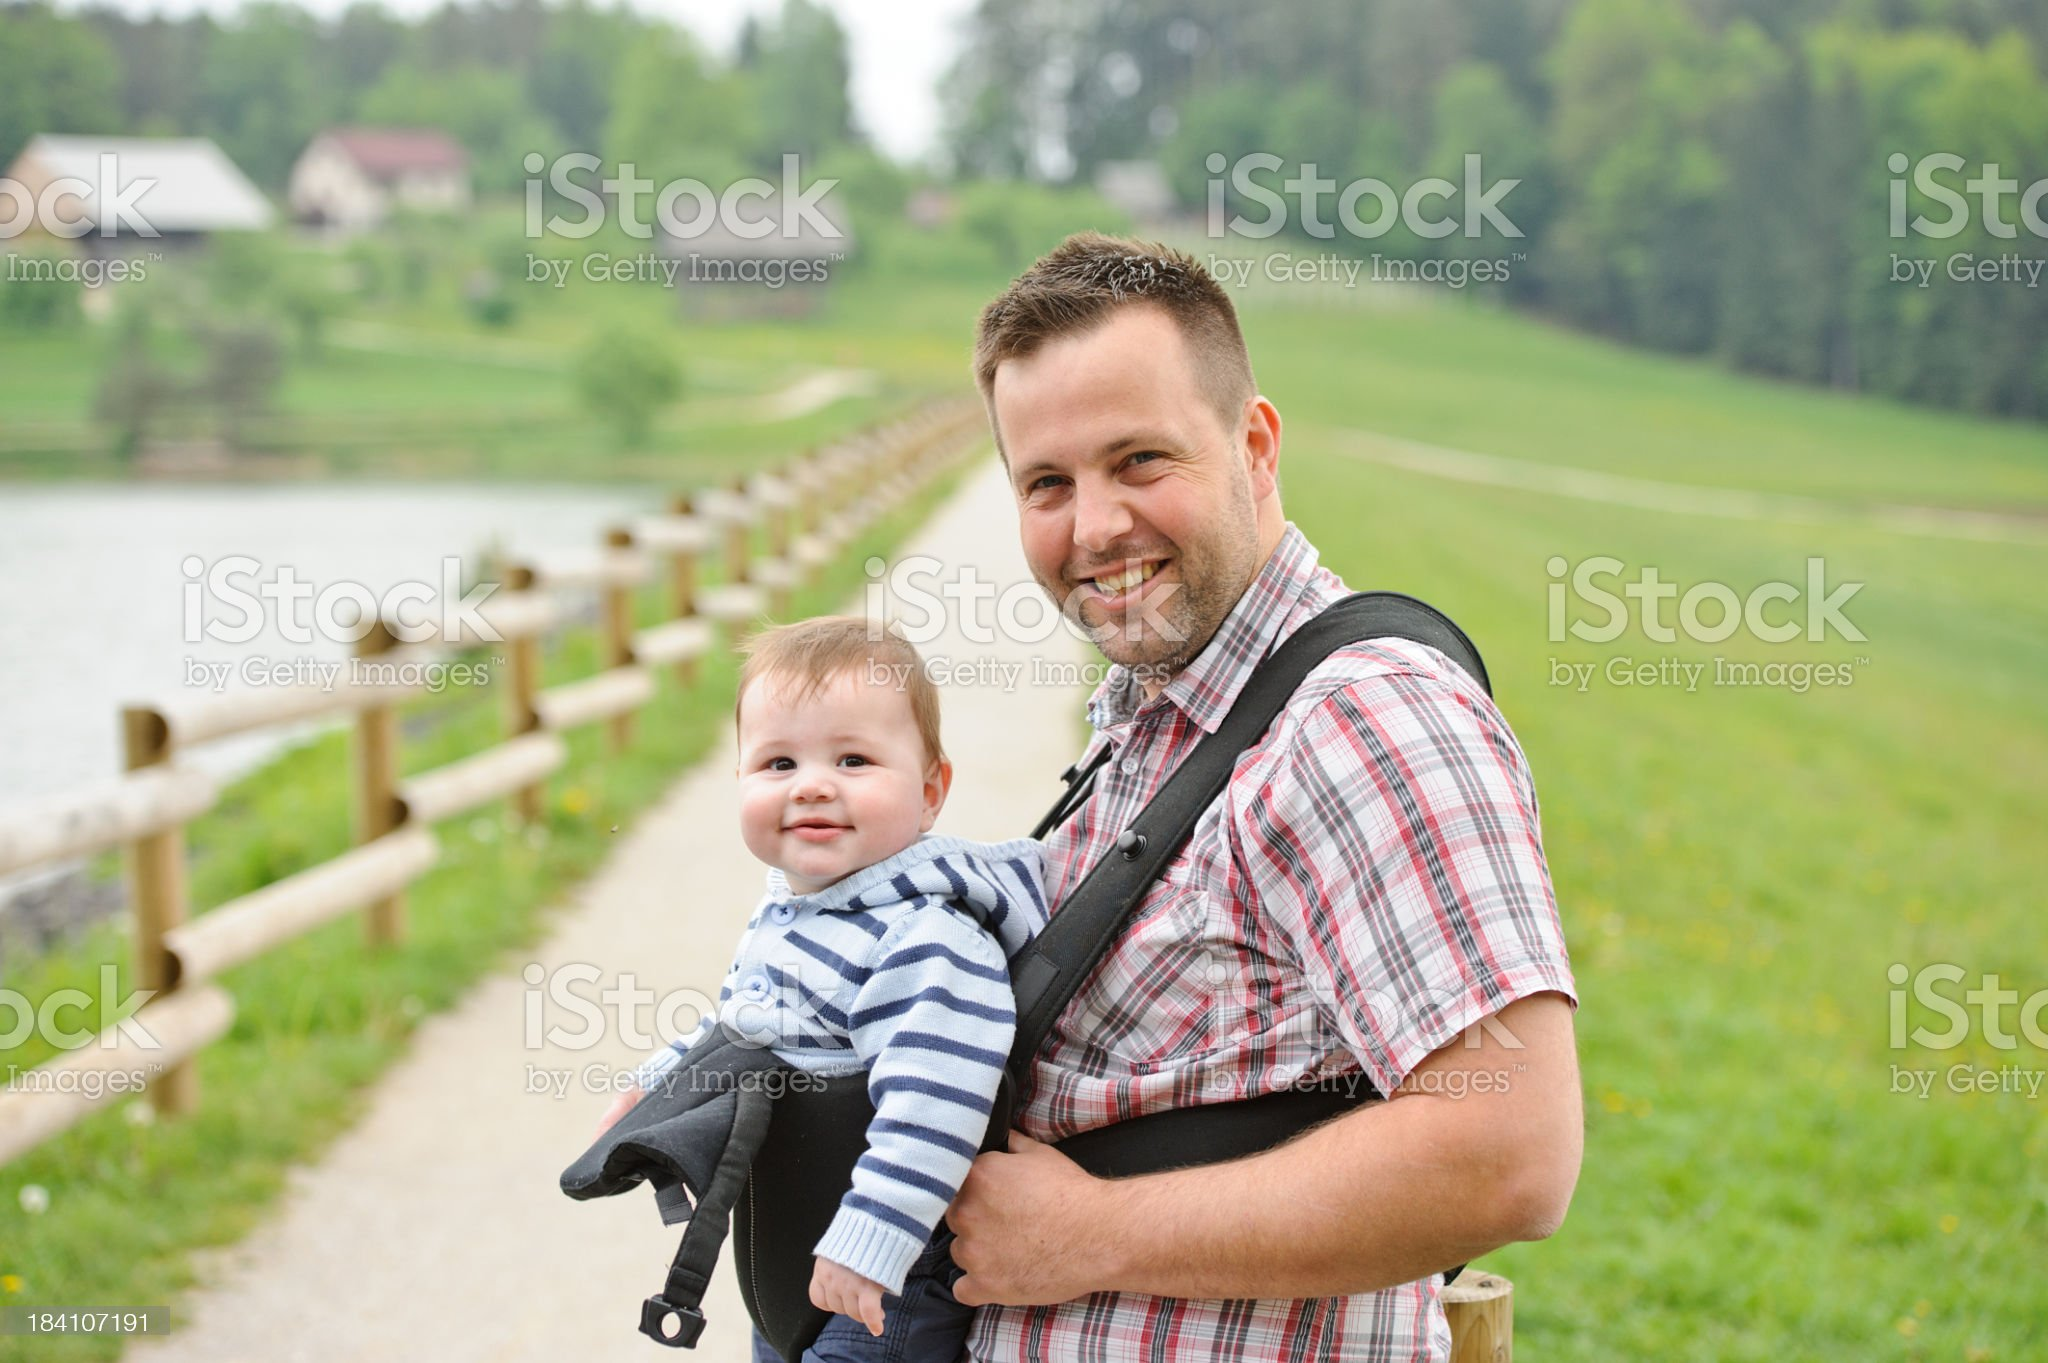 Walking by the lake royalty-free stock photo